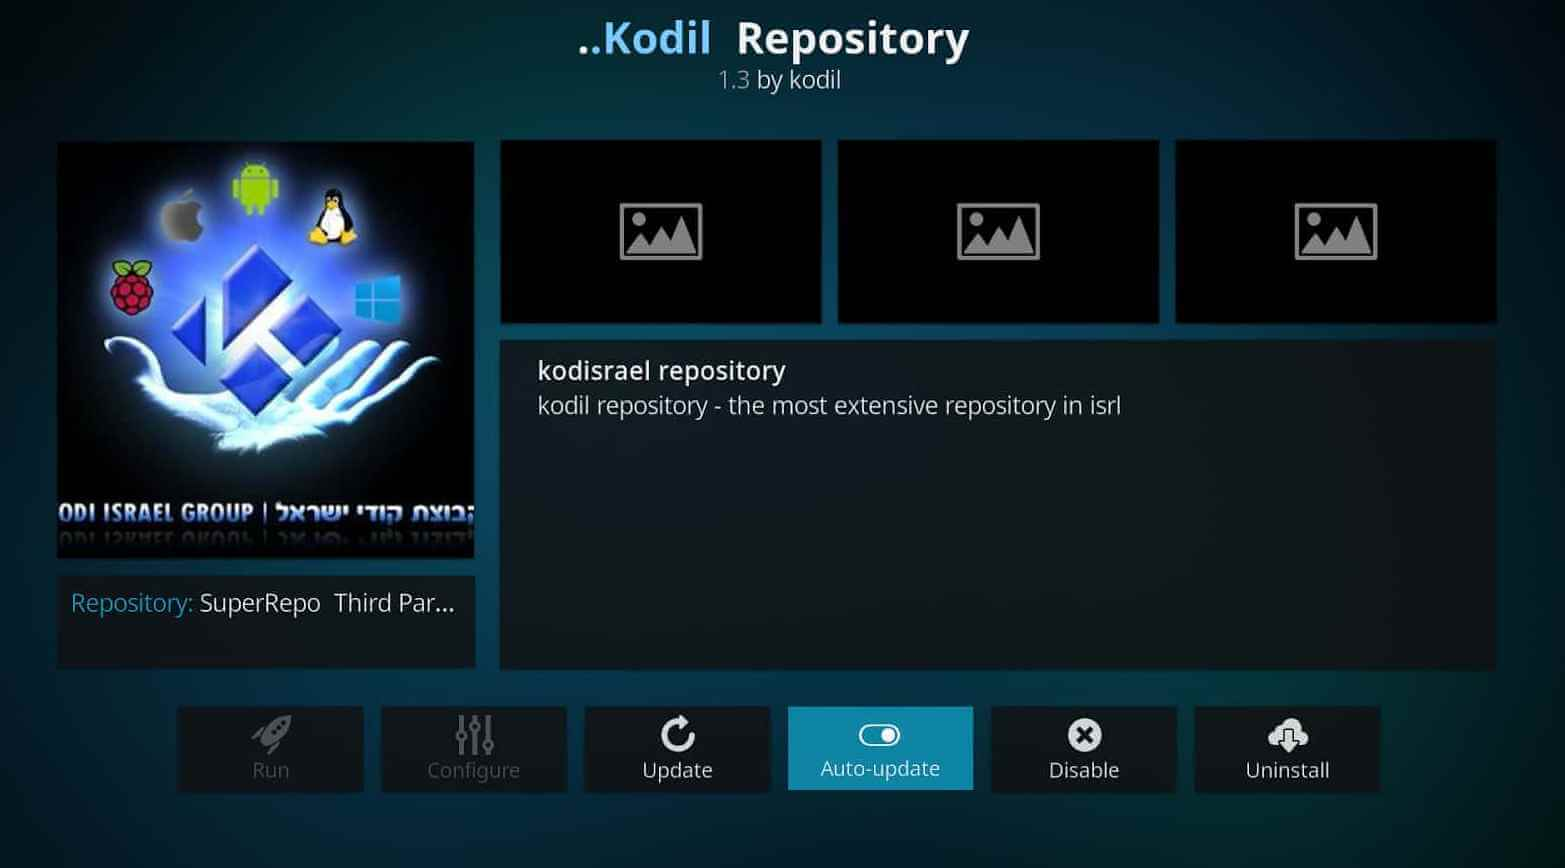 How to Install Kodil Repository on Kodi